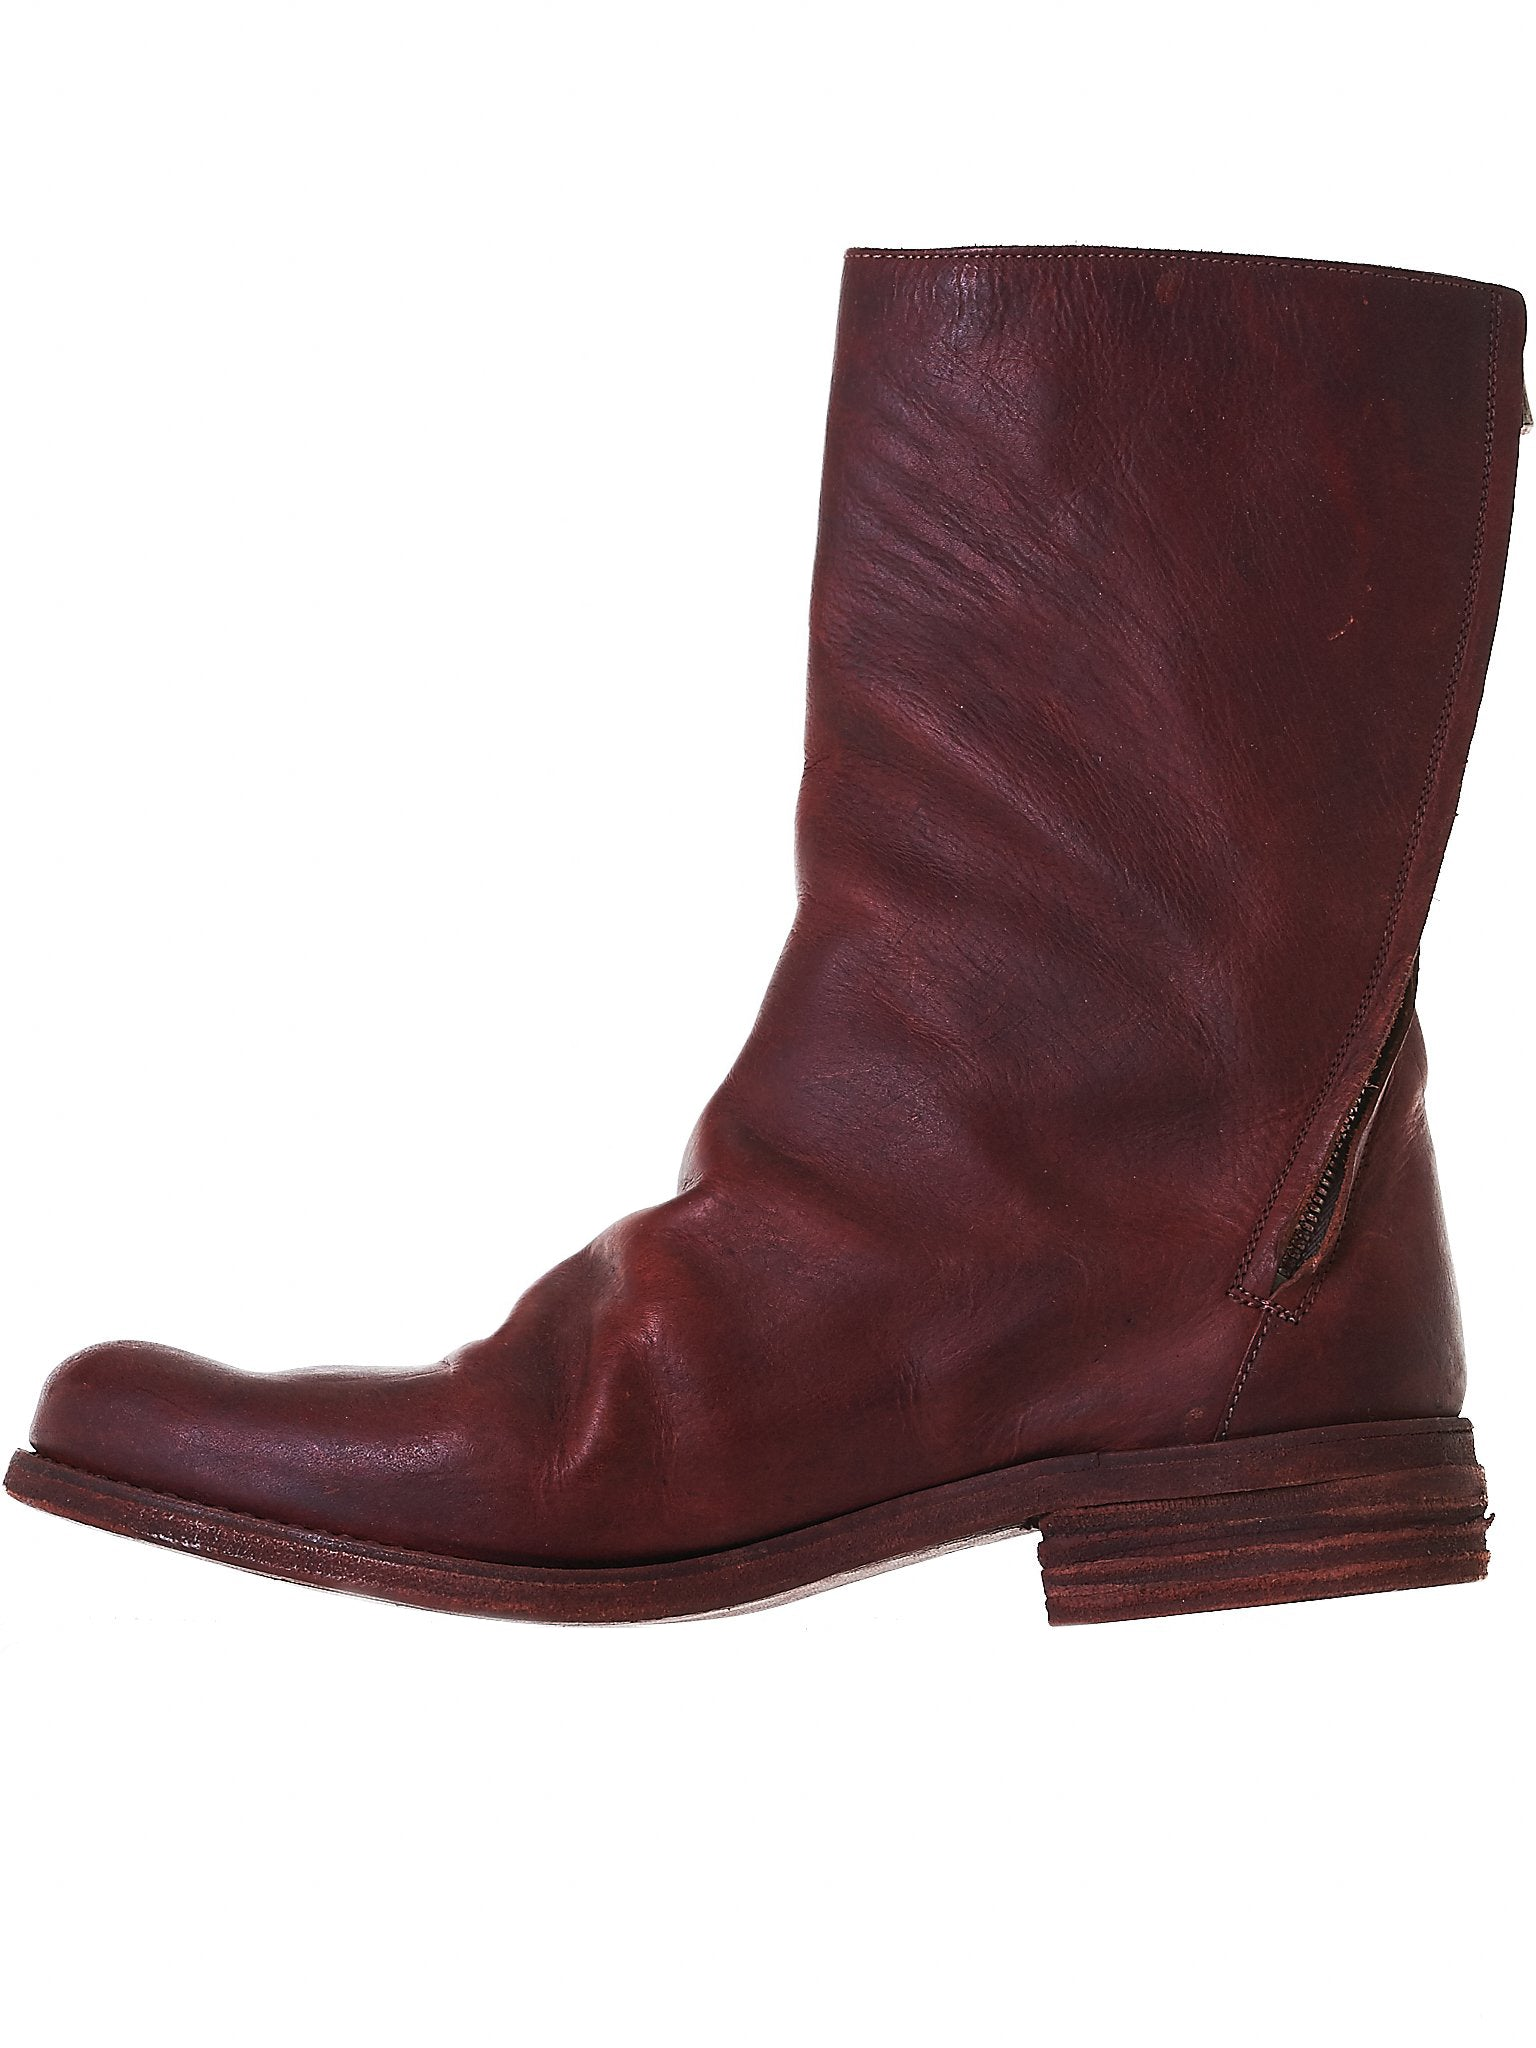 Zipped Leather Boots (S14 TZ1 VITELLO-CALF ROSSO)